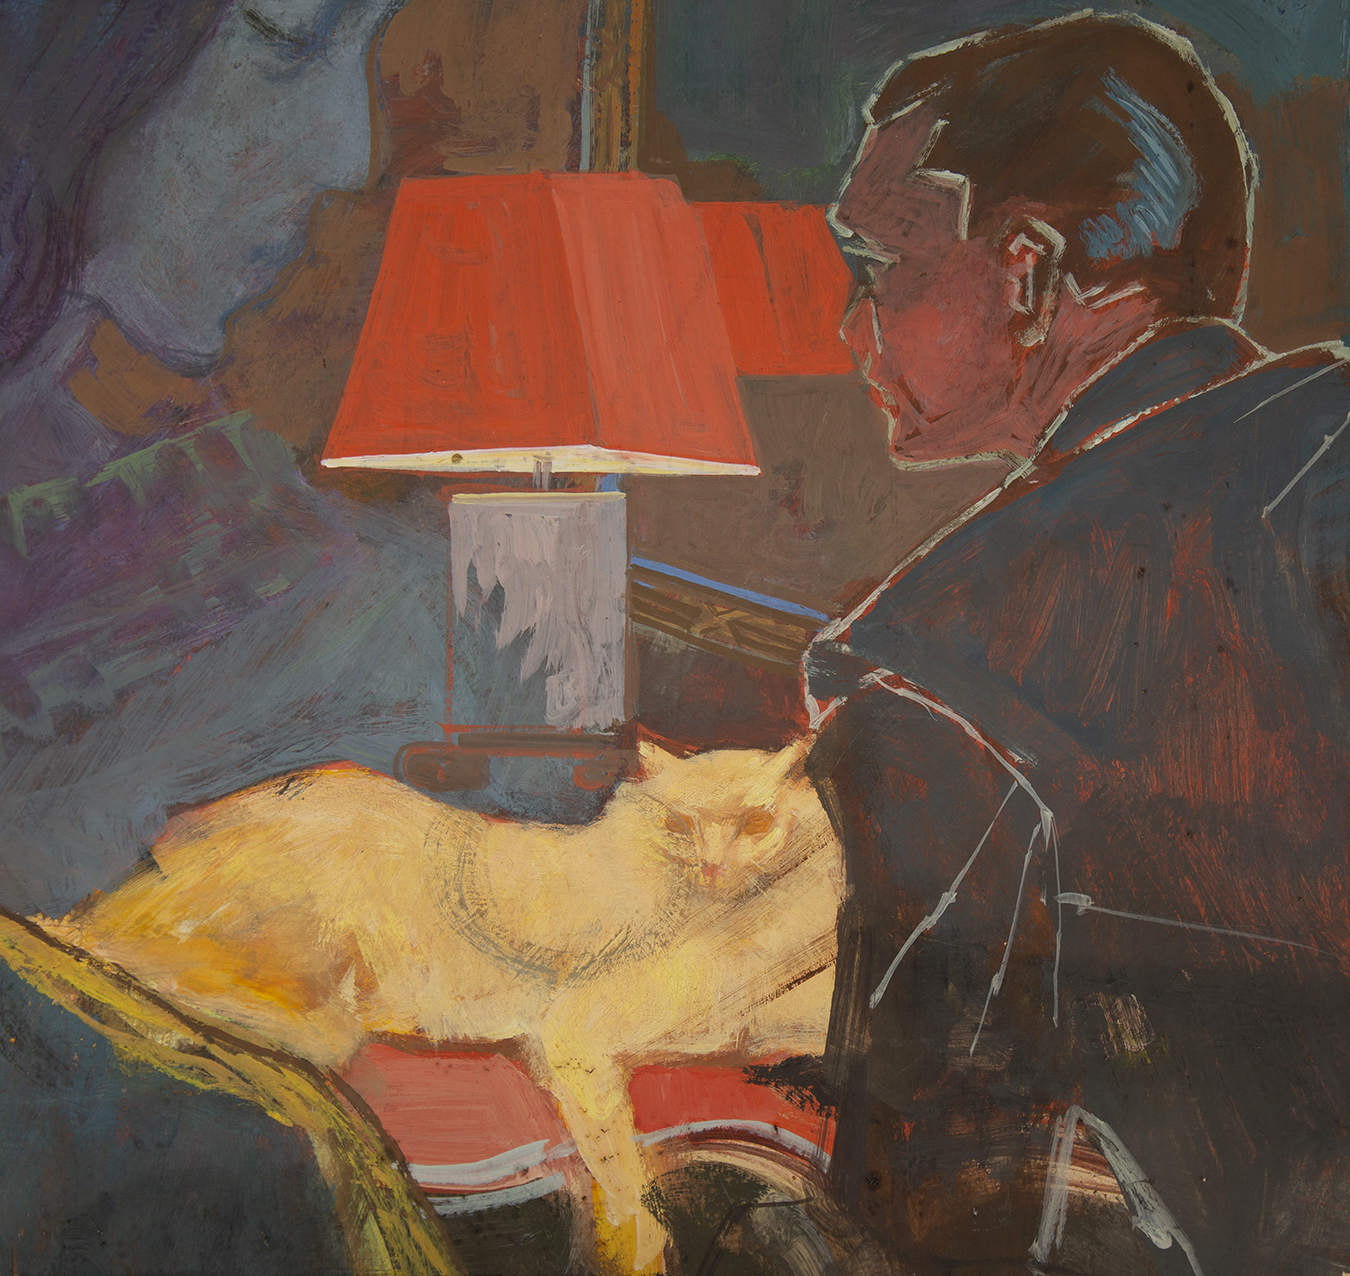 A cat lounging under lamplight while the profile of a man stares distractedly at the ephemeral figure of a woman in the background